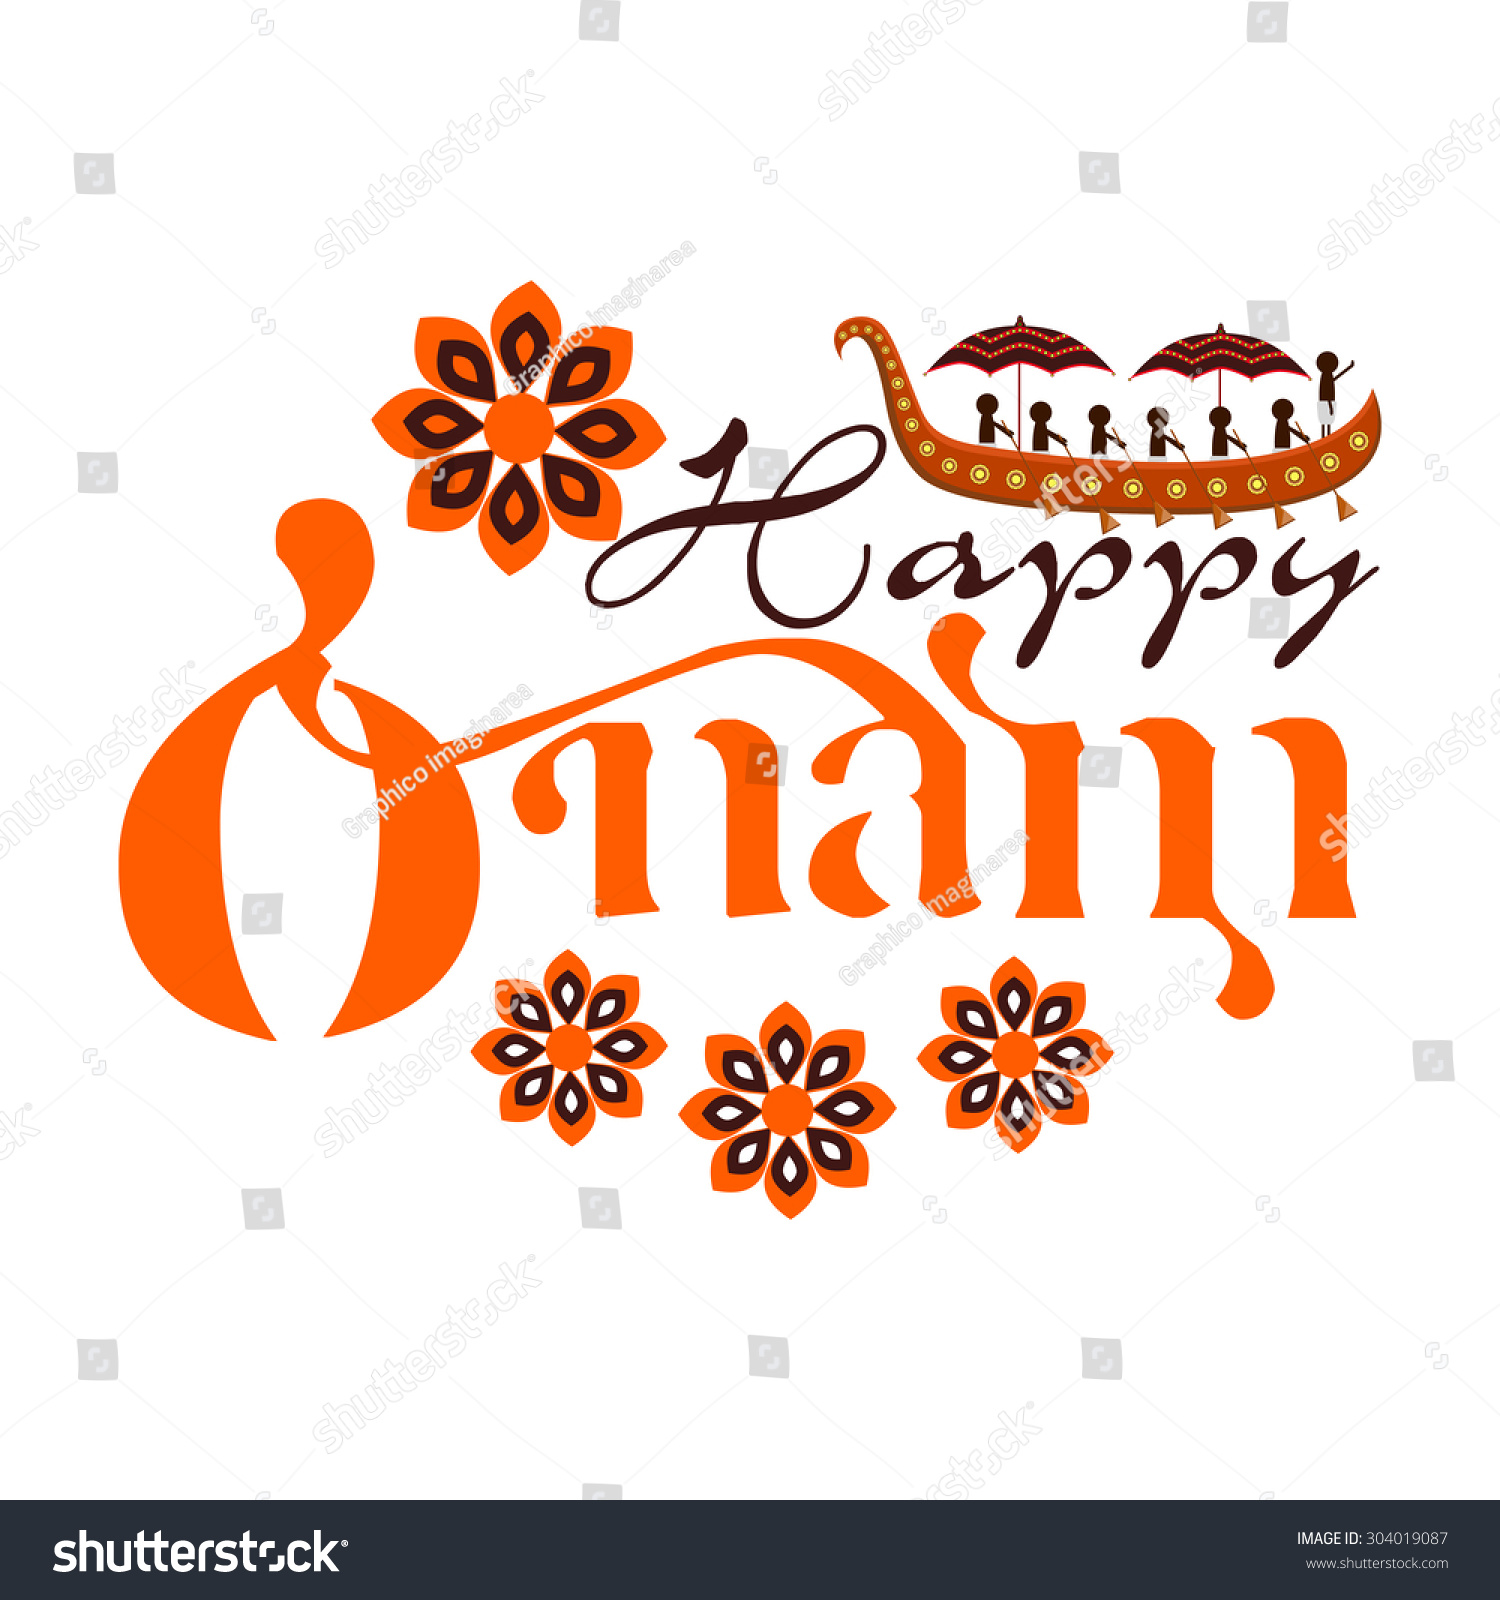 Happy Onam Festival Design With Onam Boat and floral - Onam Boat PNG